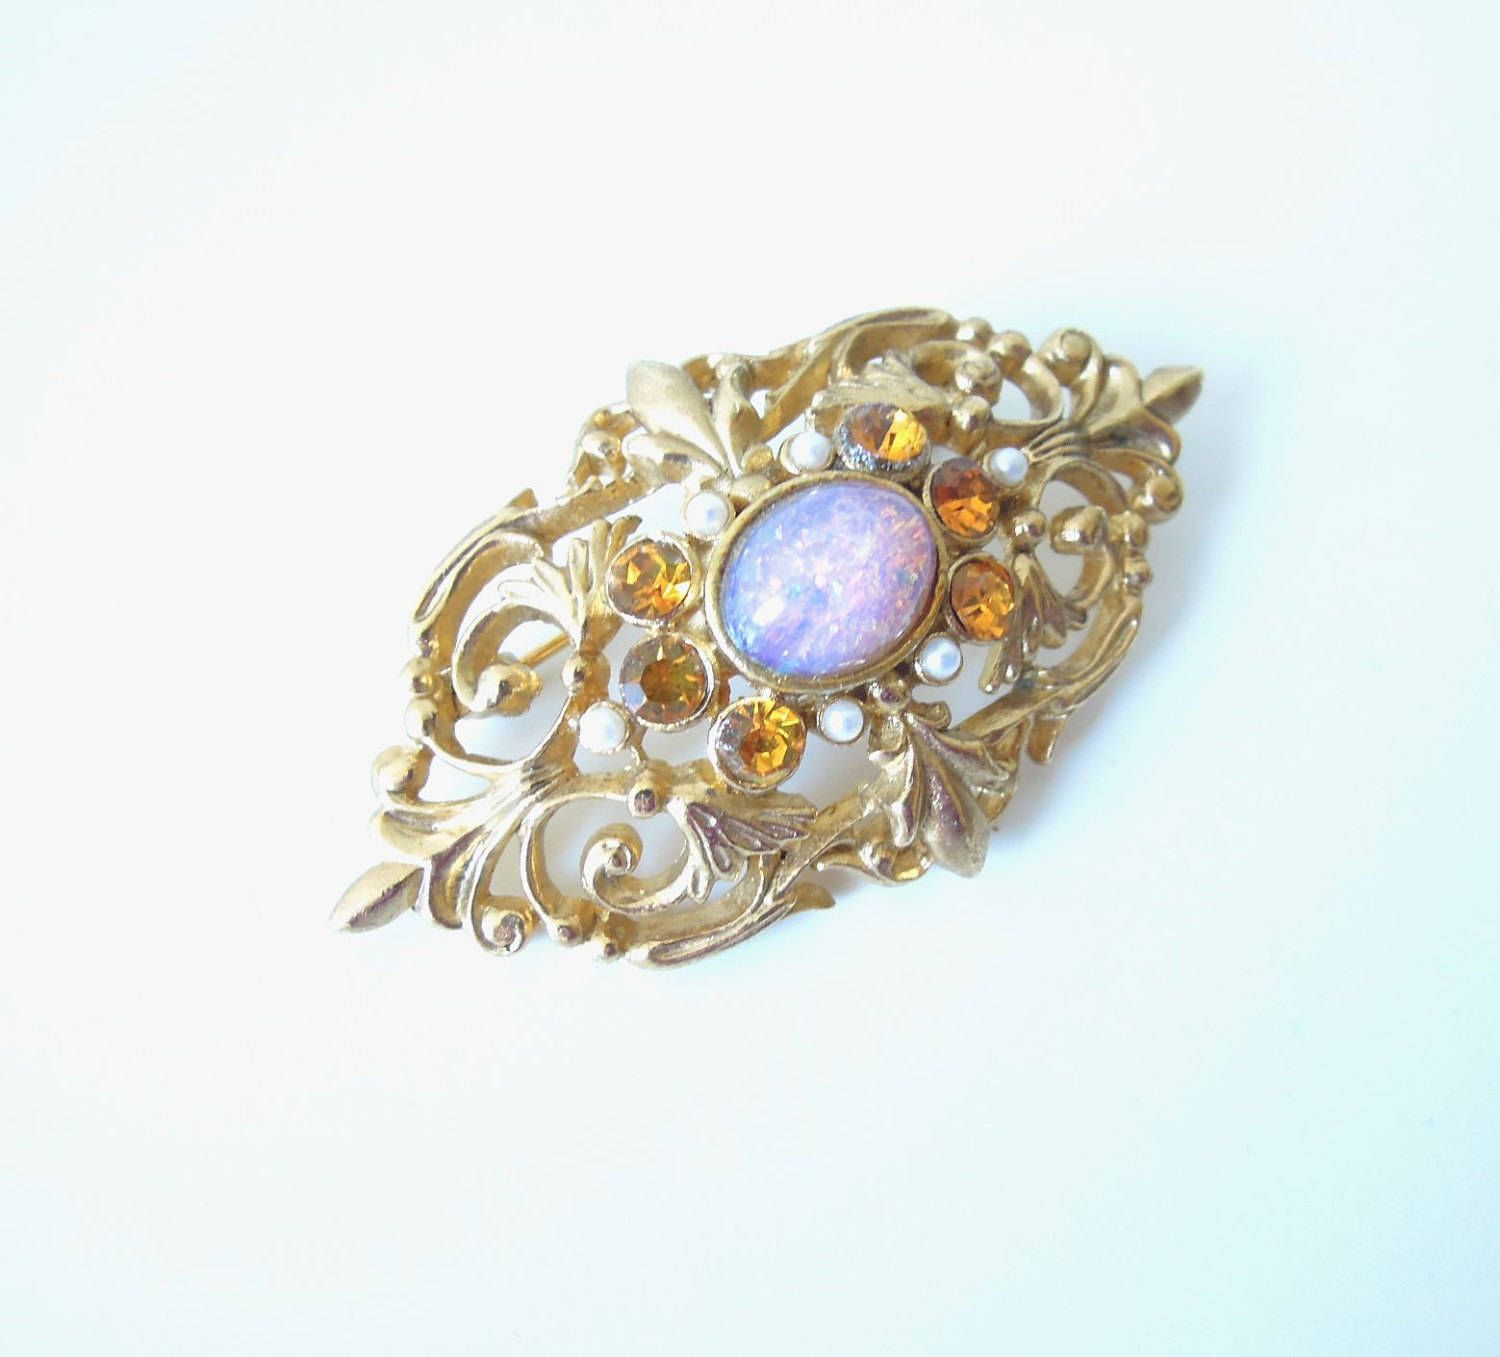 diamonds ring earrings antiques brooch set opal jewellery gold pushkin stunning